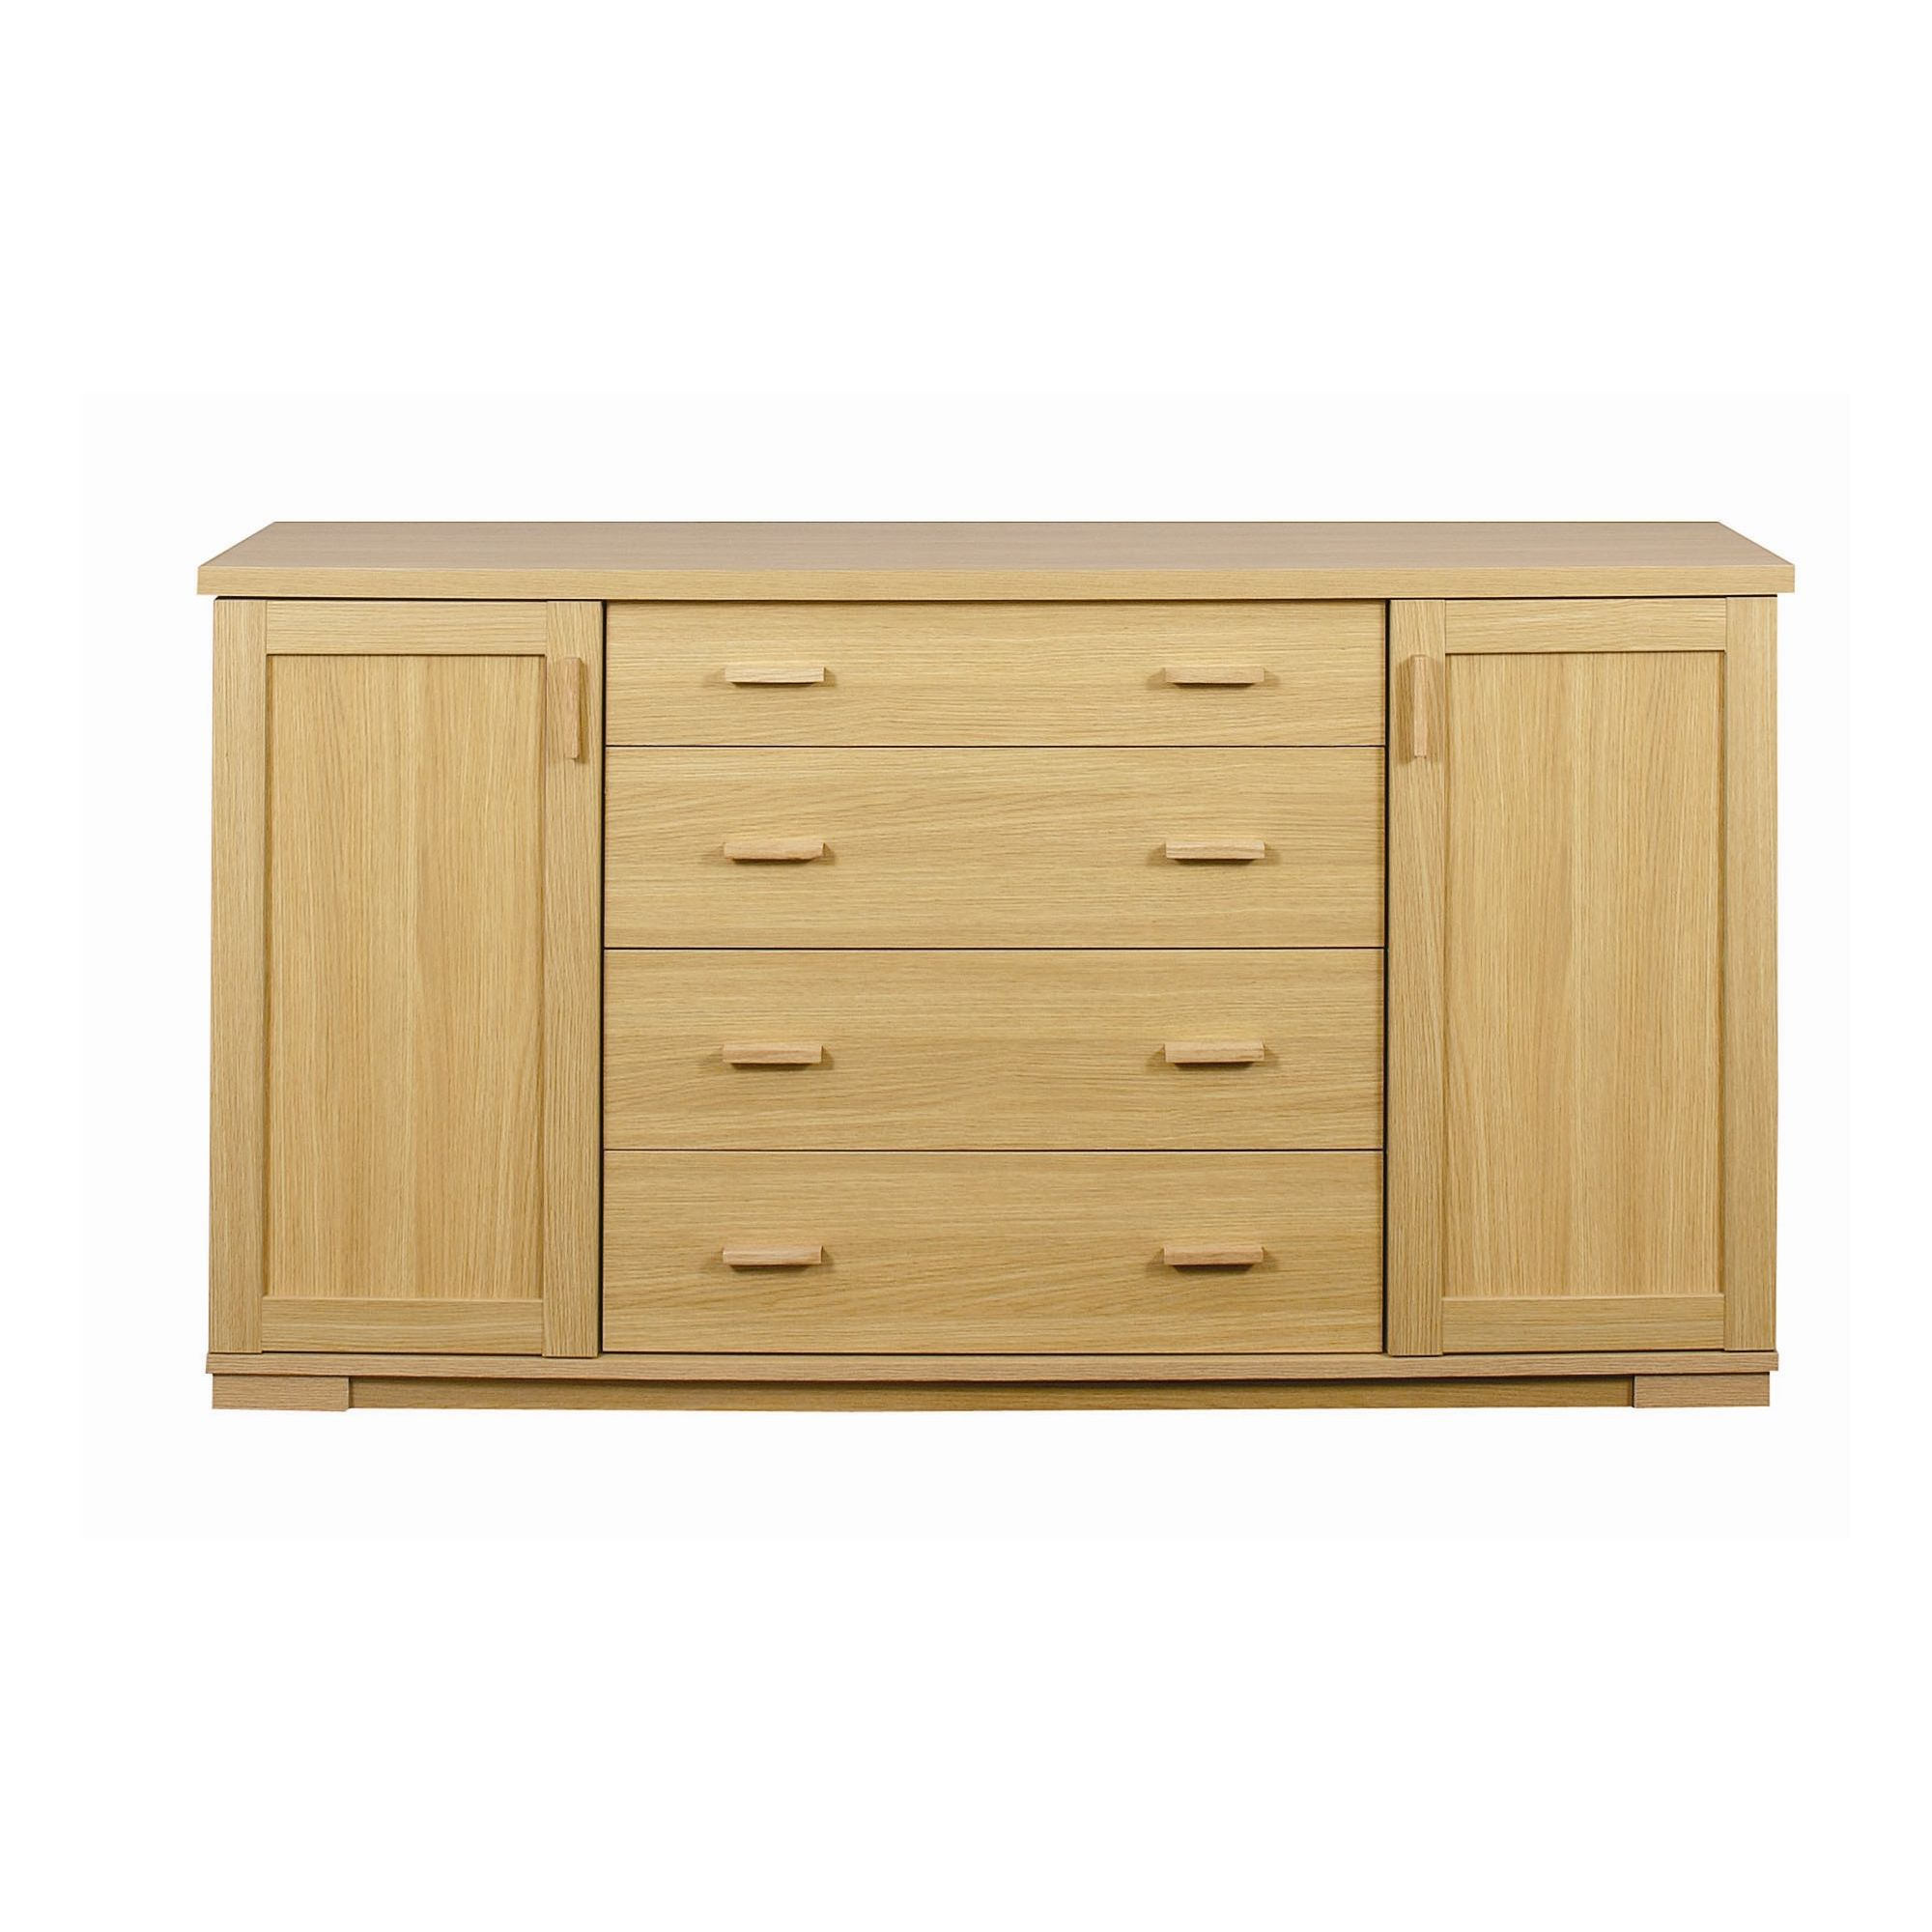 Caxton Huxley 2 Door / 4 Drawer Sideboard in Light Oak at Tesco Direct